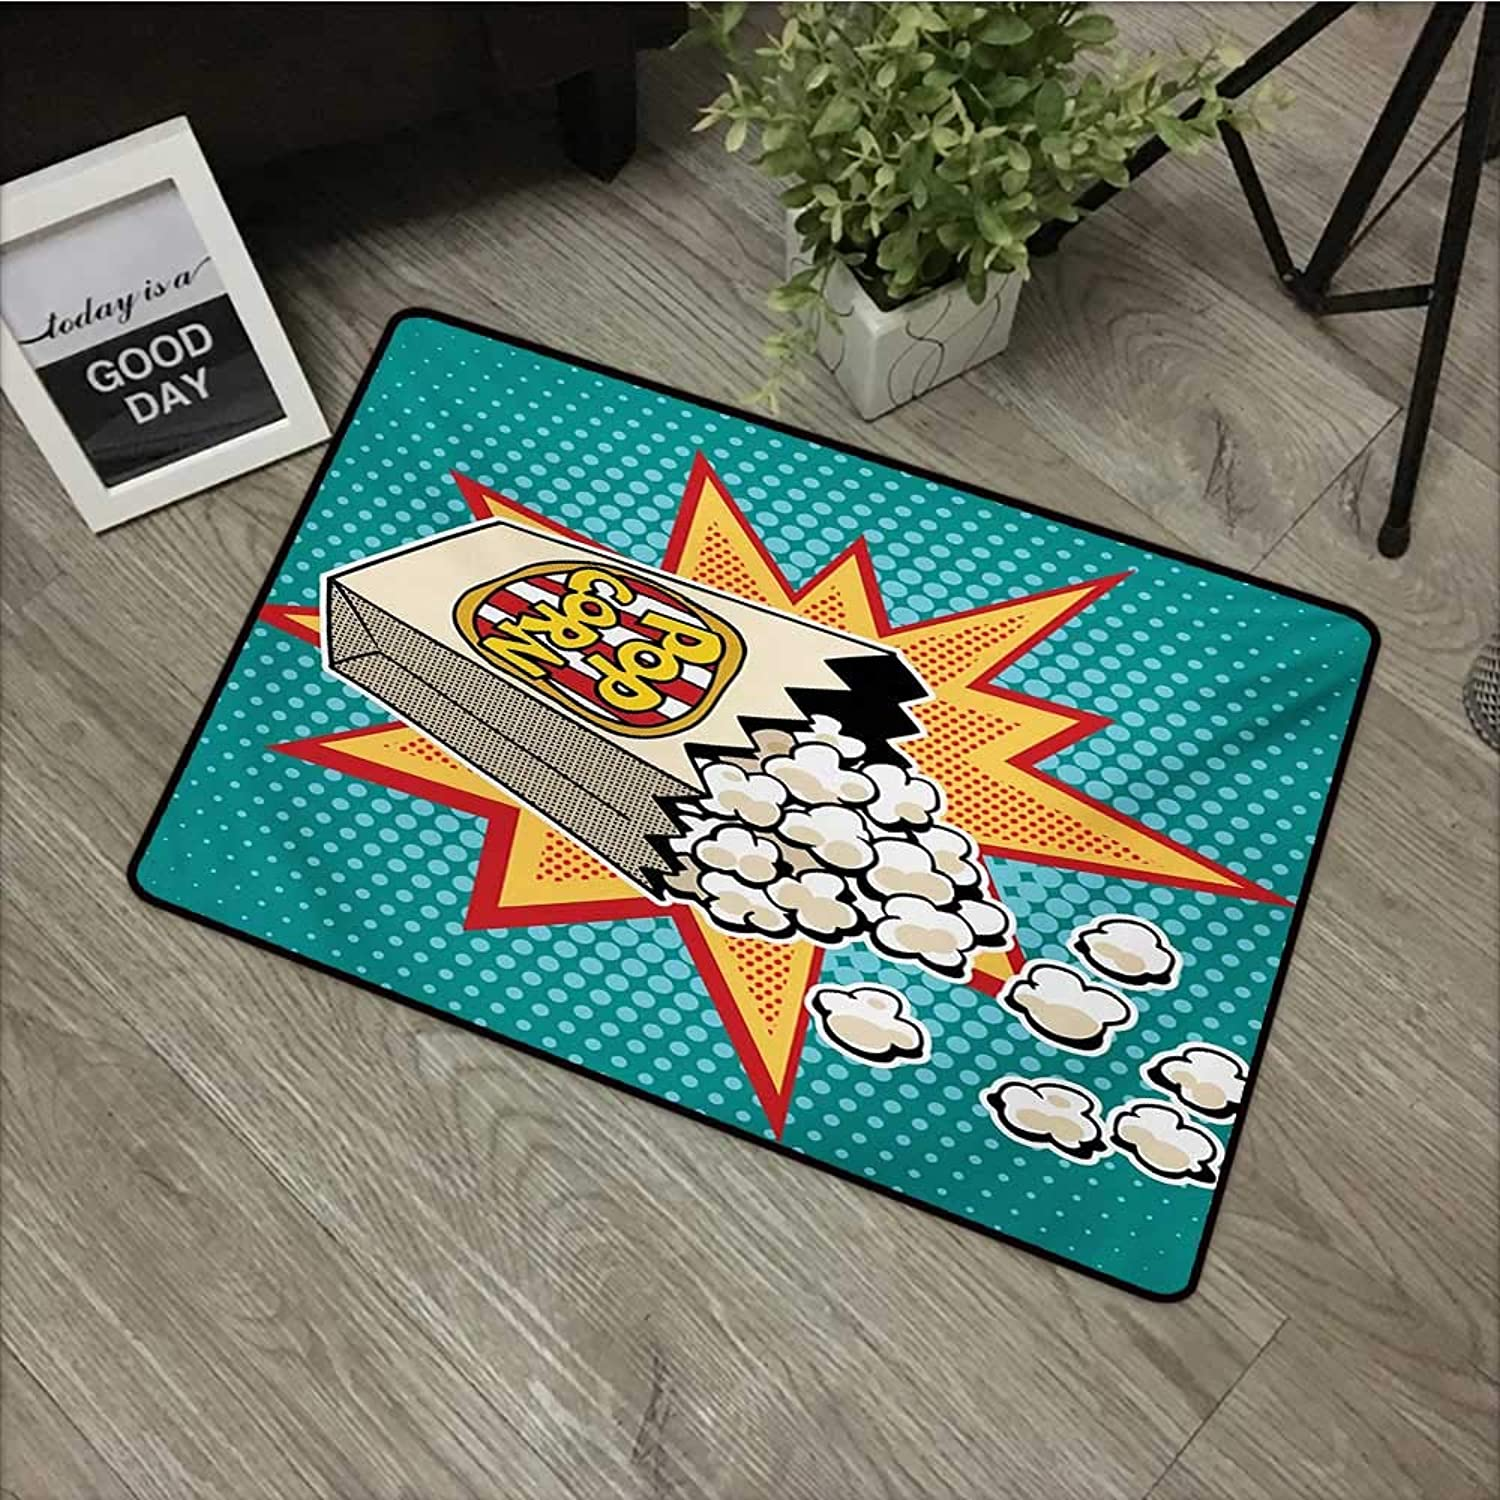 Clear printed pattern door mat W35 x L59 INCH Movie Theater,Halftone Background with Retro Style colorful Popcorn Design Cinema Snacks,Multicolor Non-slip, with non-slip backing,Non-slip Door Mat Carp